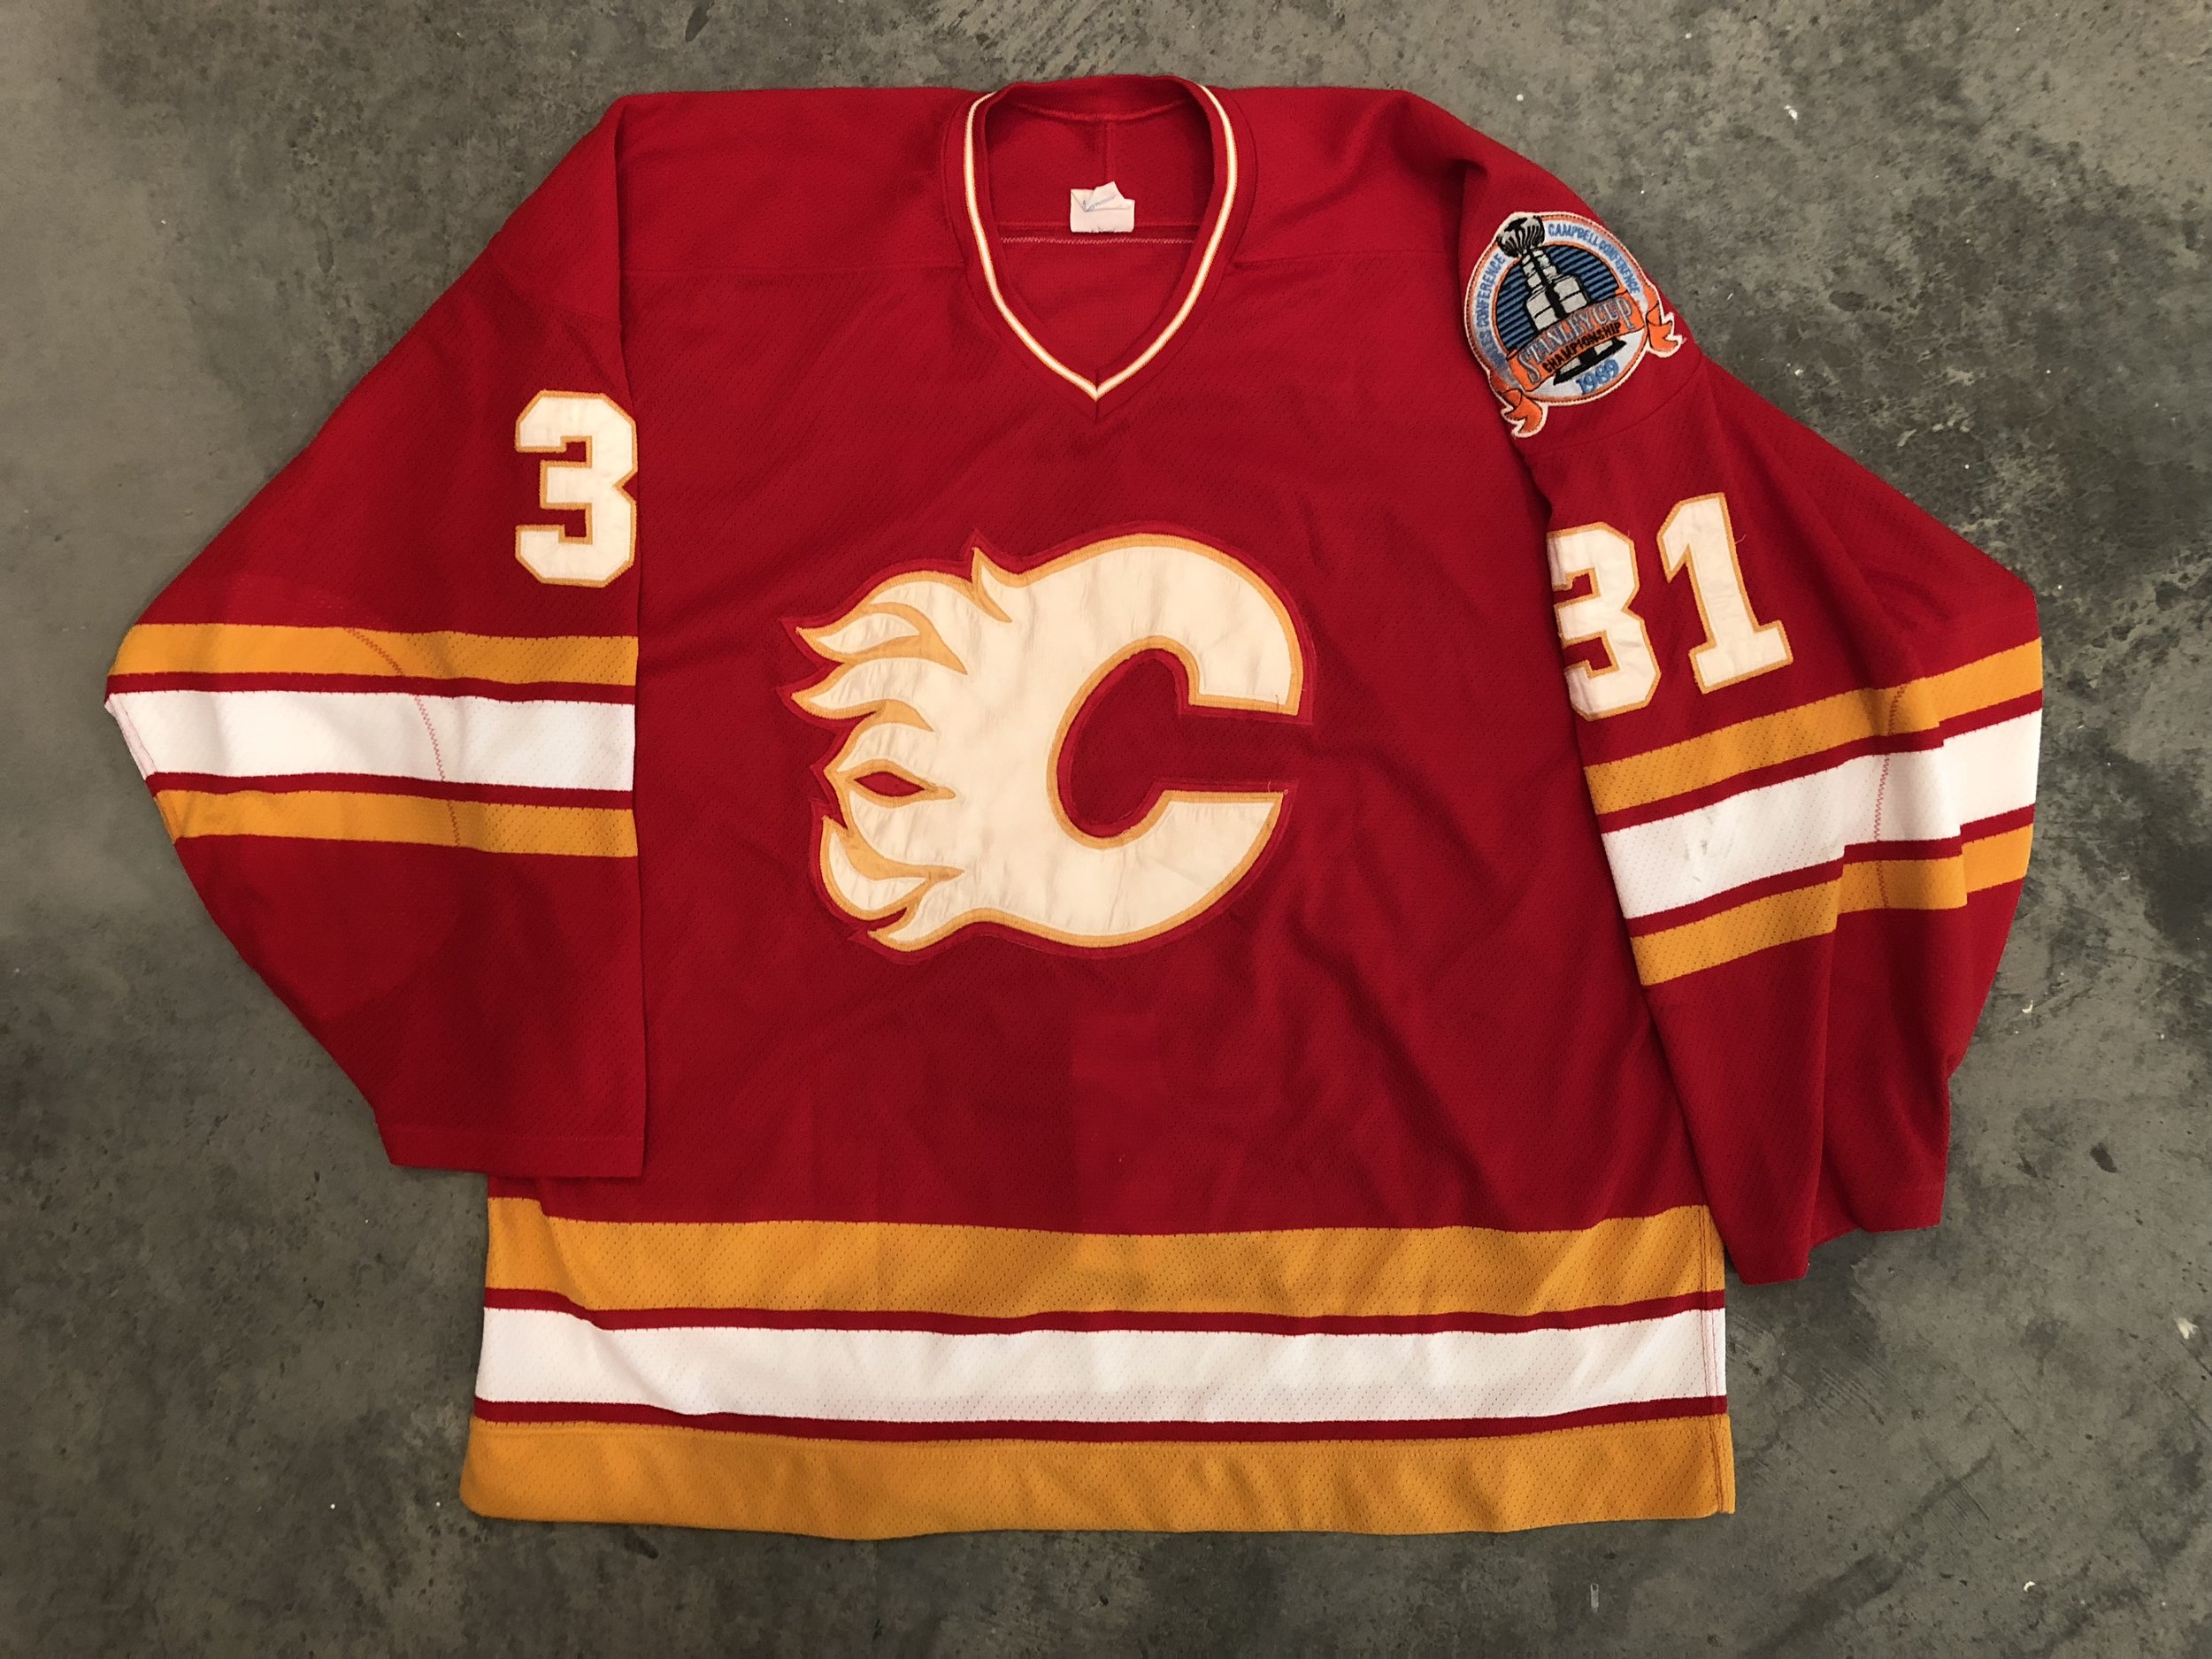 1989 Calgary Flames Stanley Cup Finals Game Worn Road Jersey - Rick Wamsley